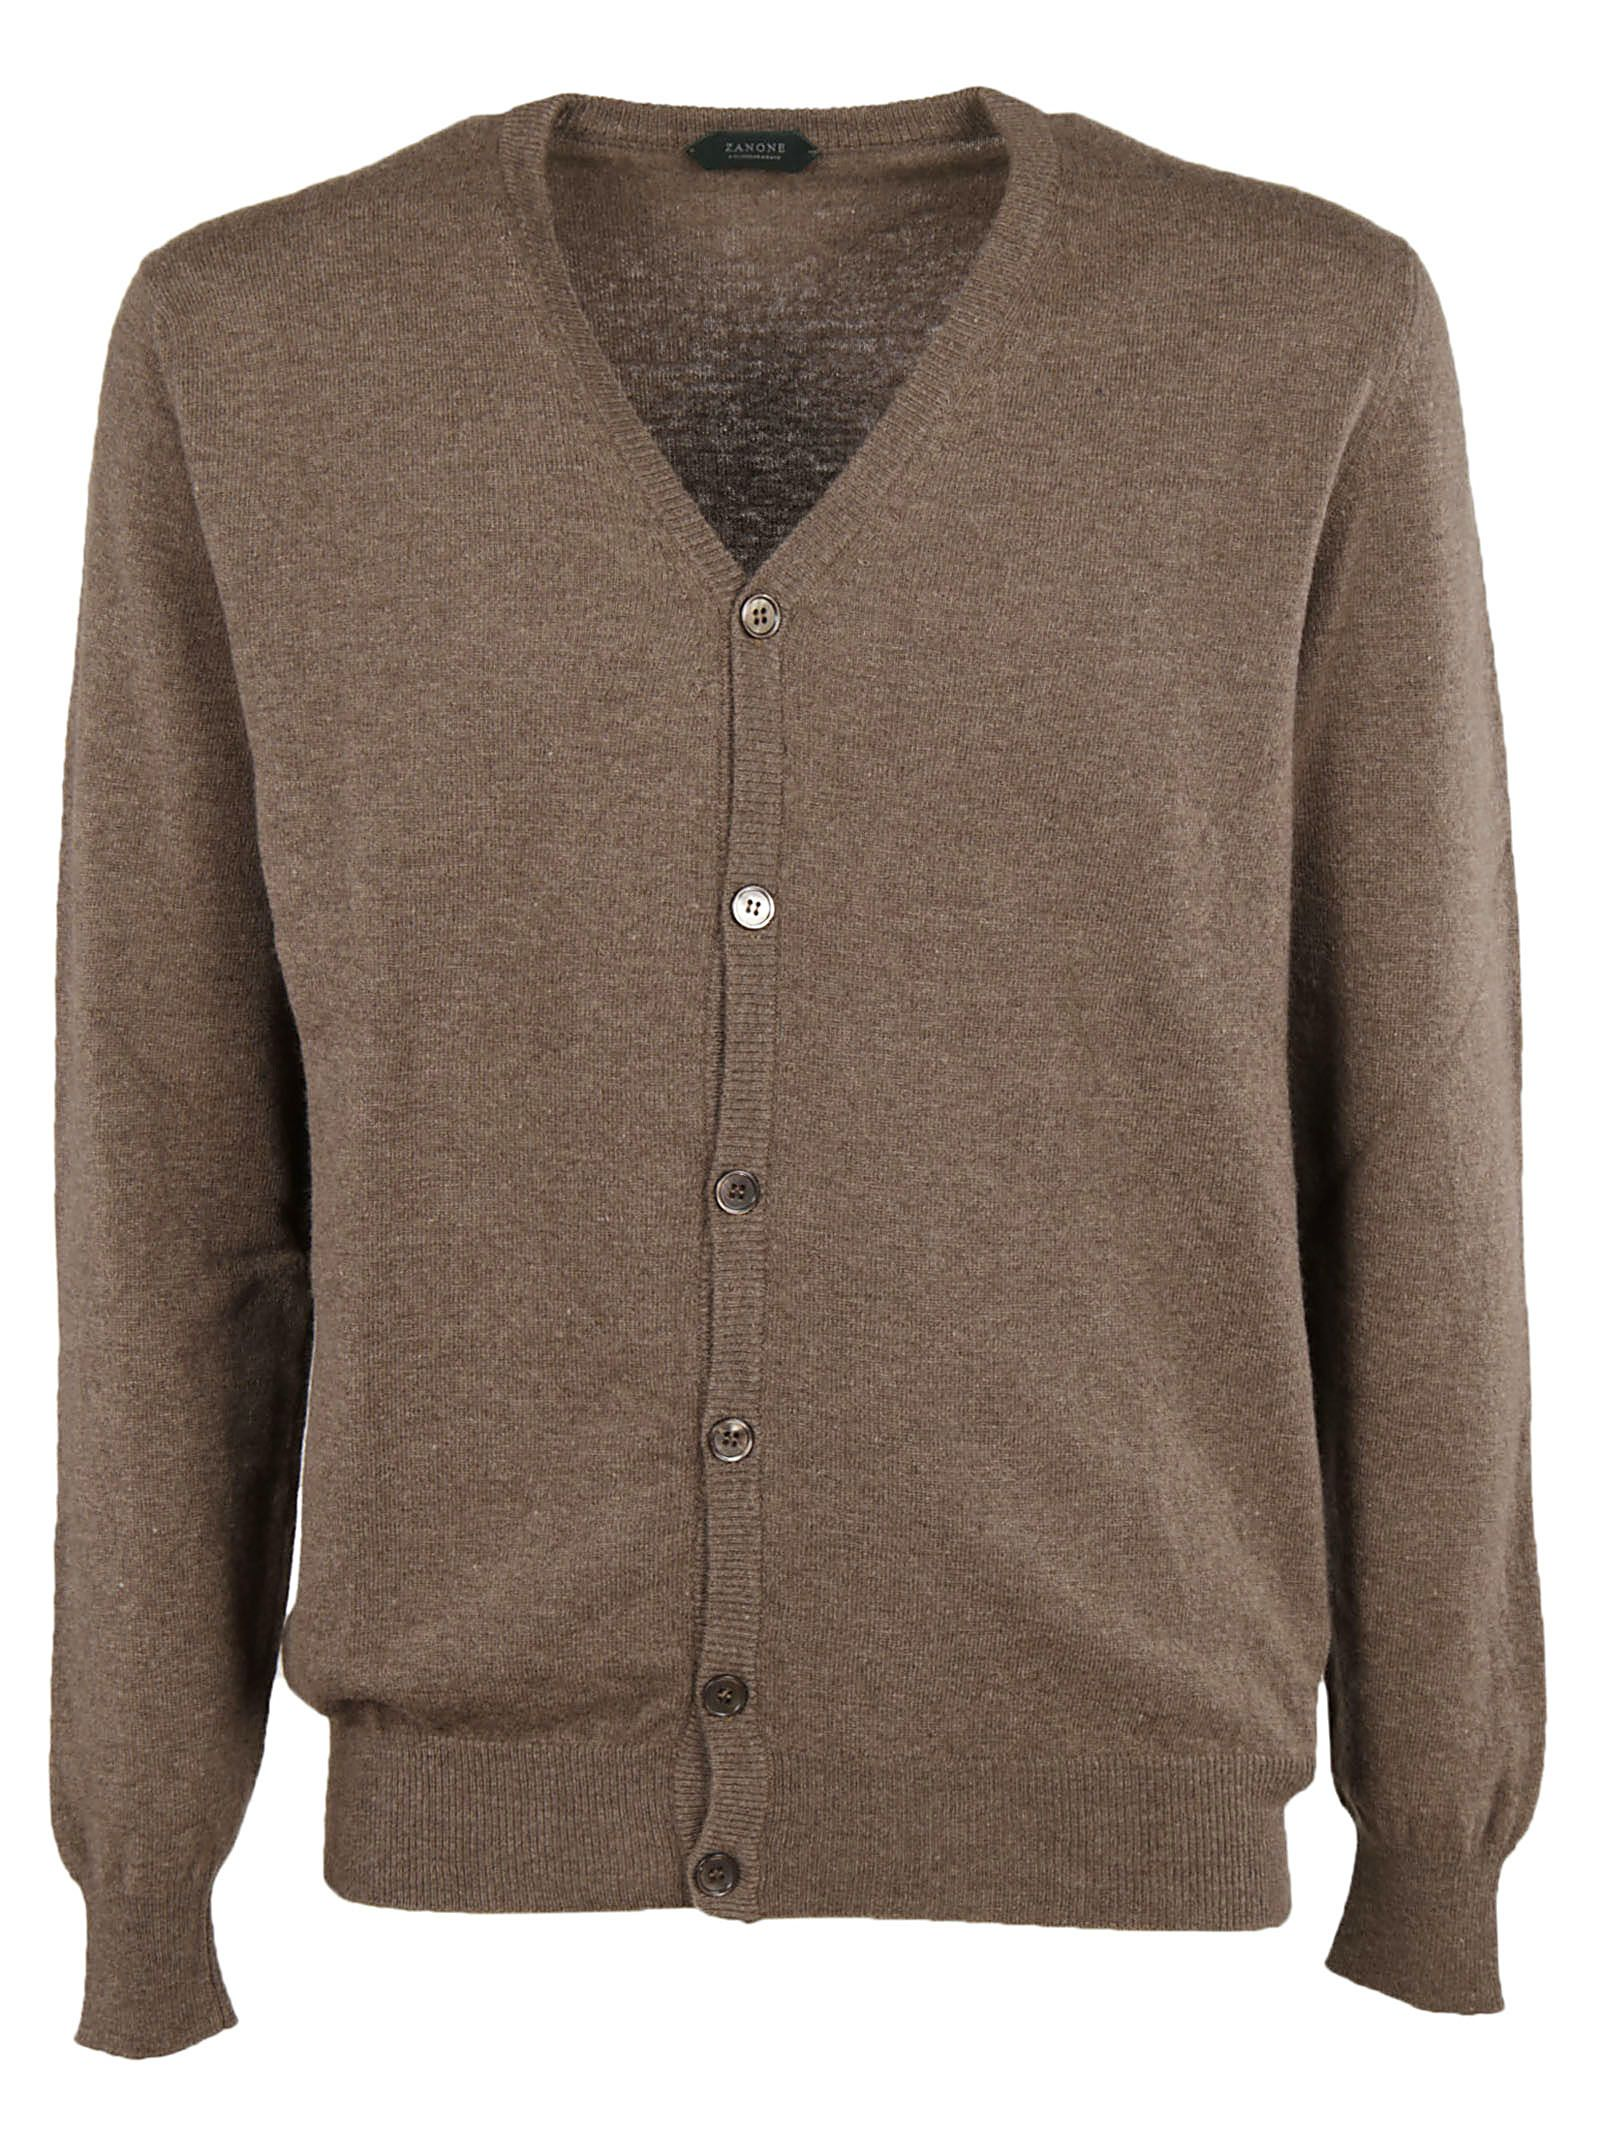 Zanone - Zanone V-neck Cardigan - Brown, Men's Cardigans | Italist